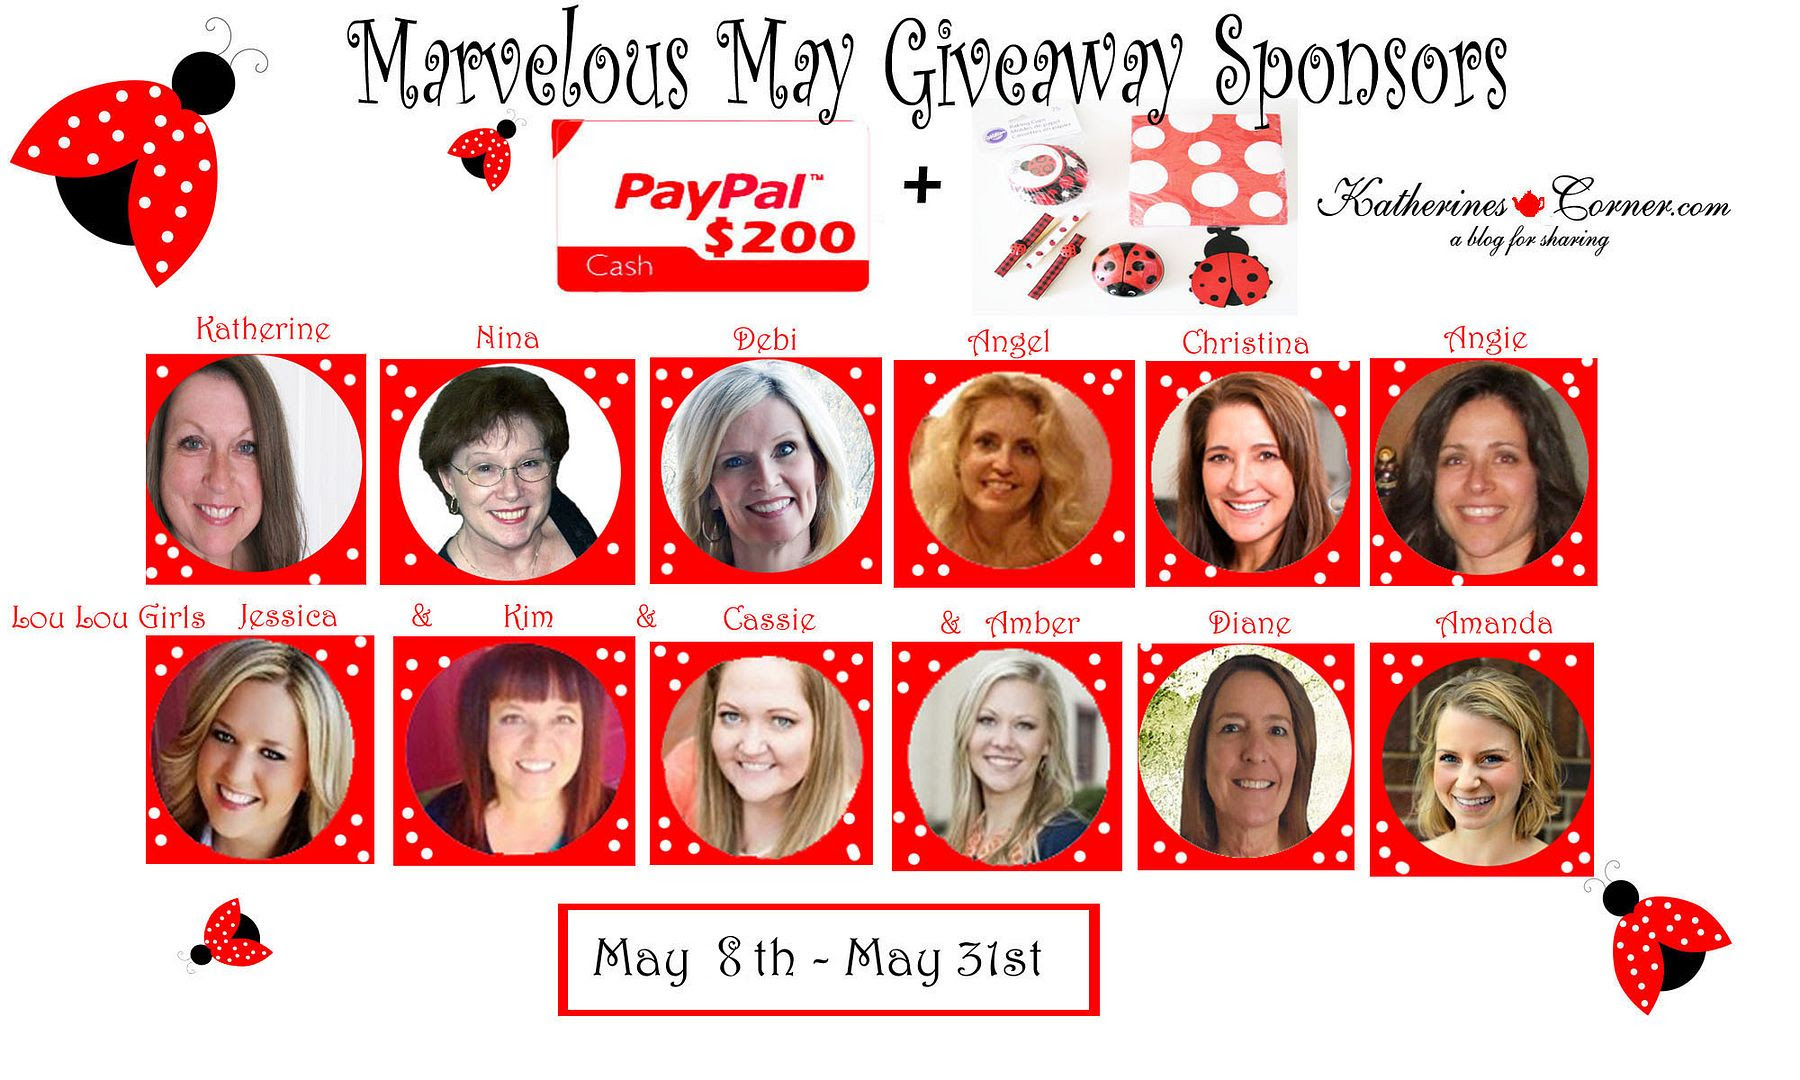 photo Katie May Giveaway Sponsors_zpsqukpr0ui.jpg